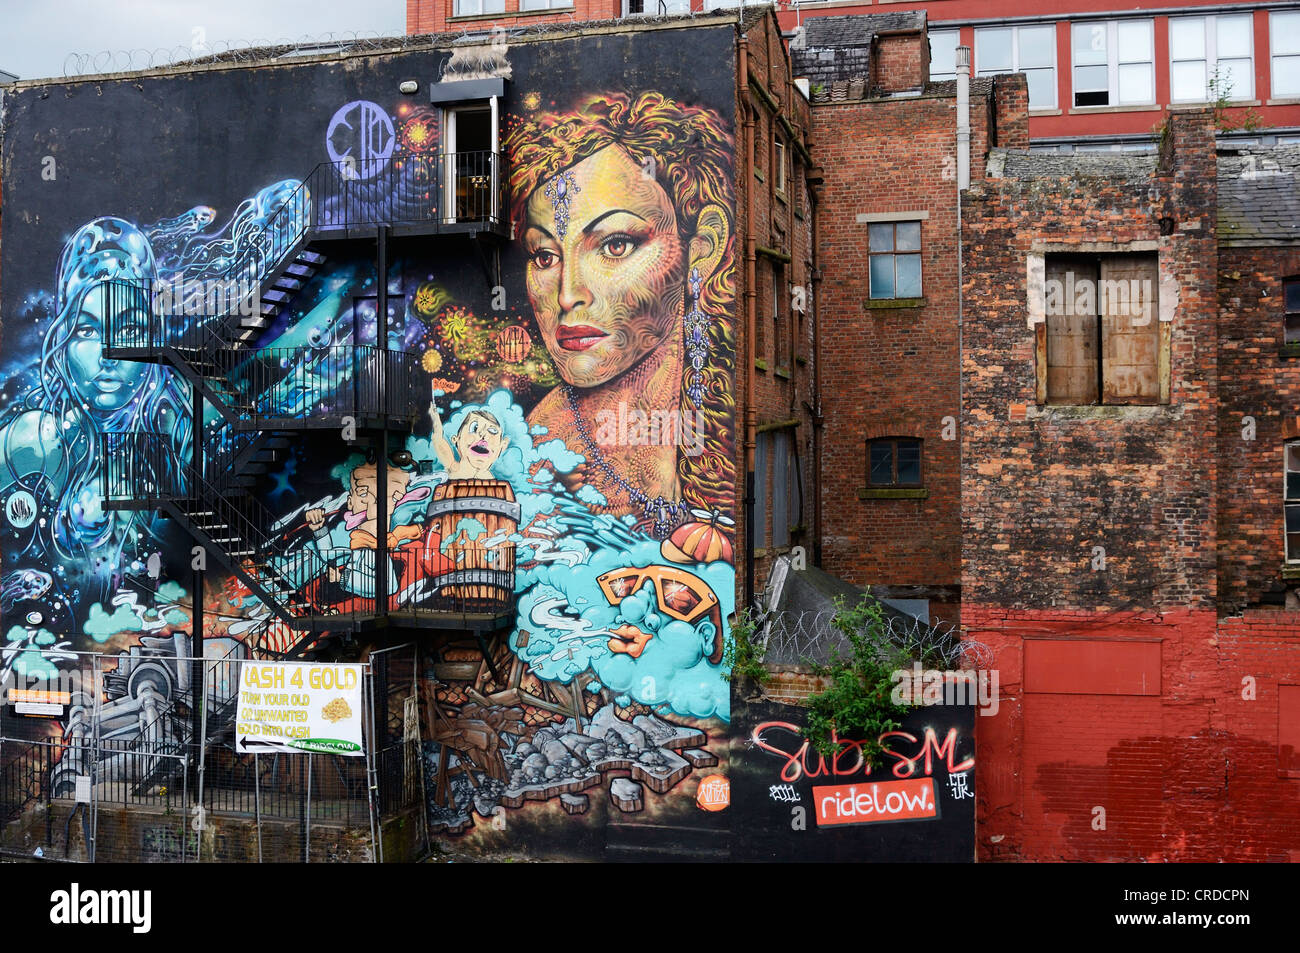 Street art on the side of a building in Manchester city centre. - Stock Image